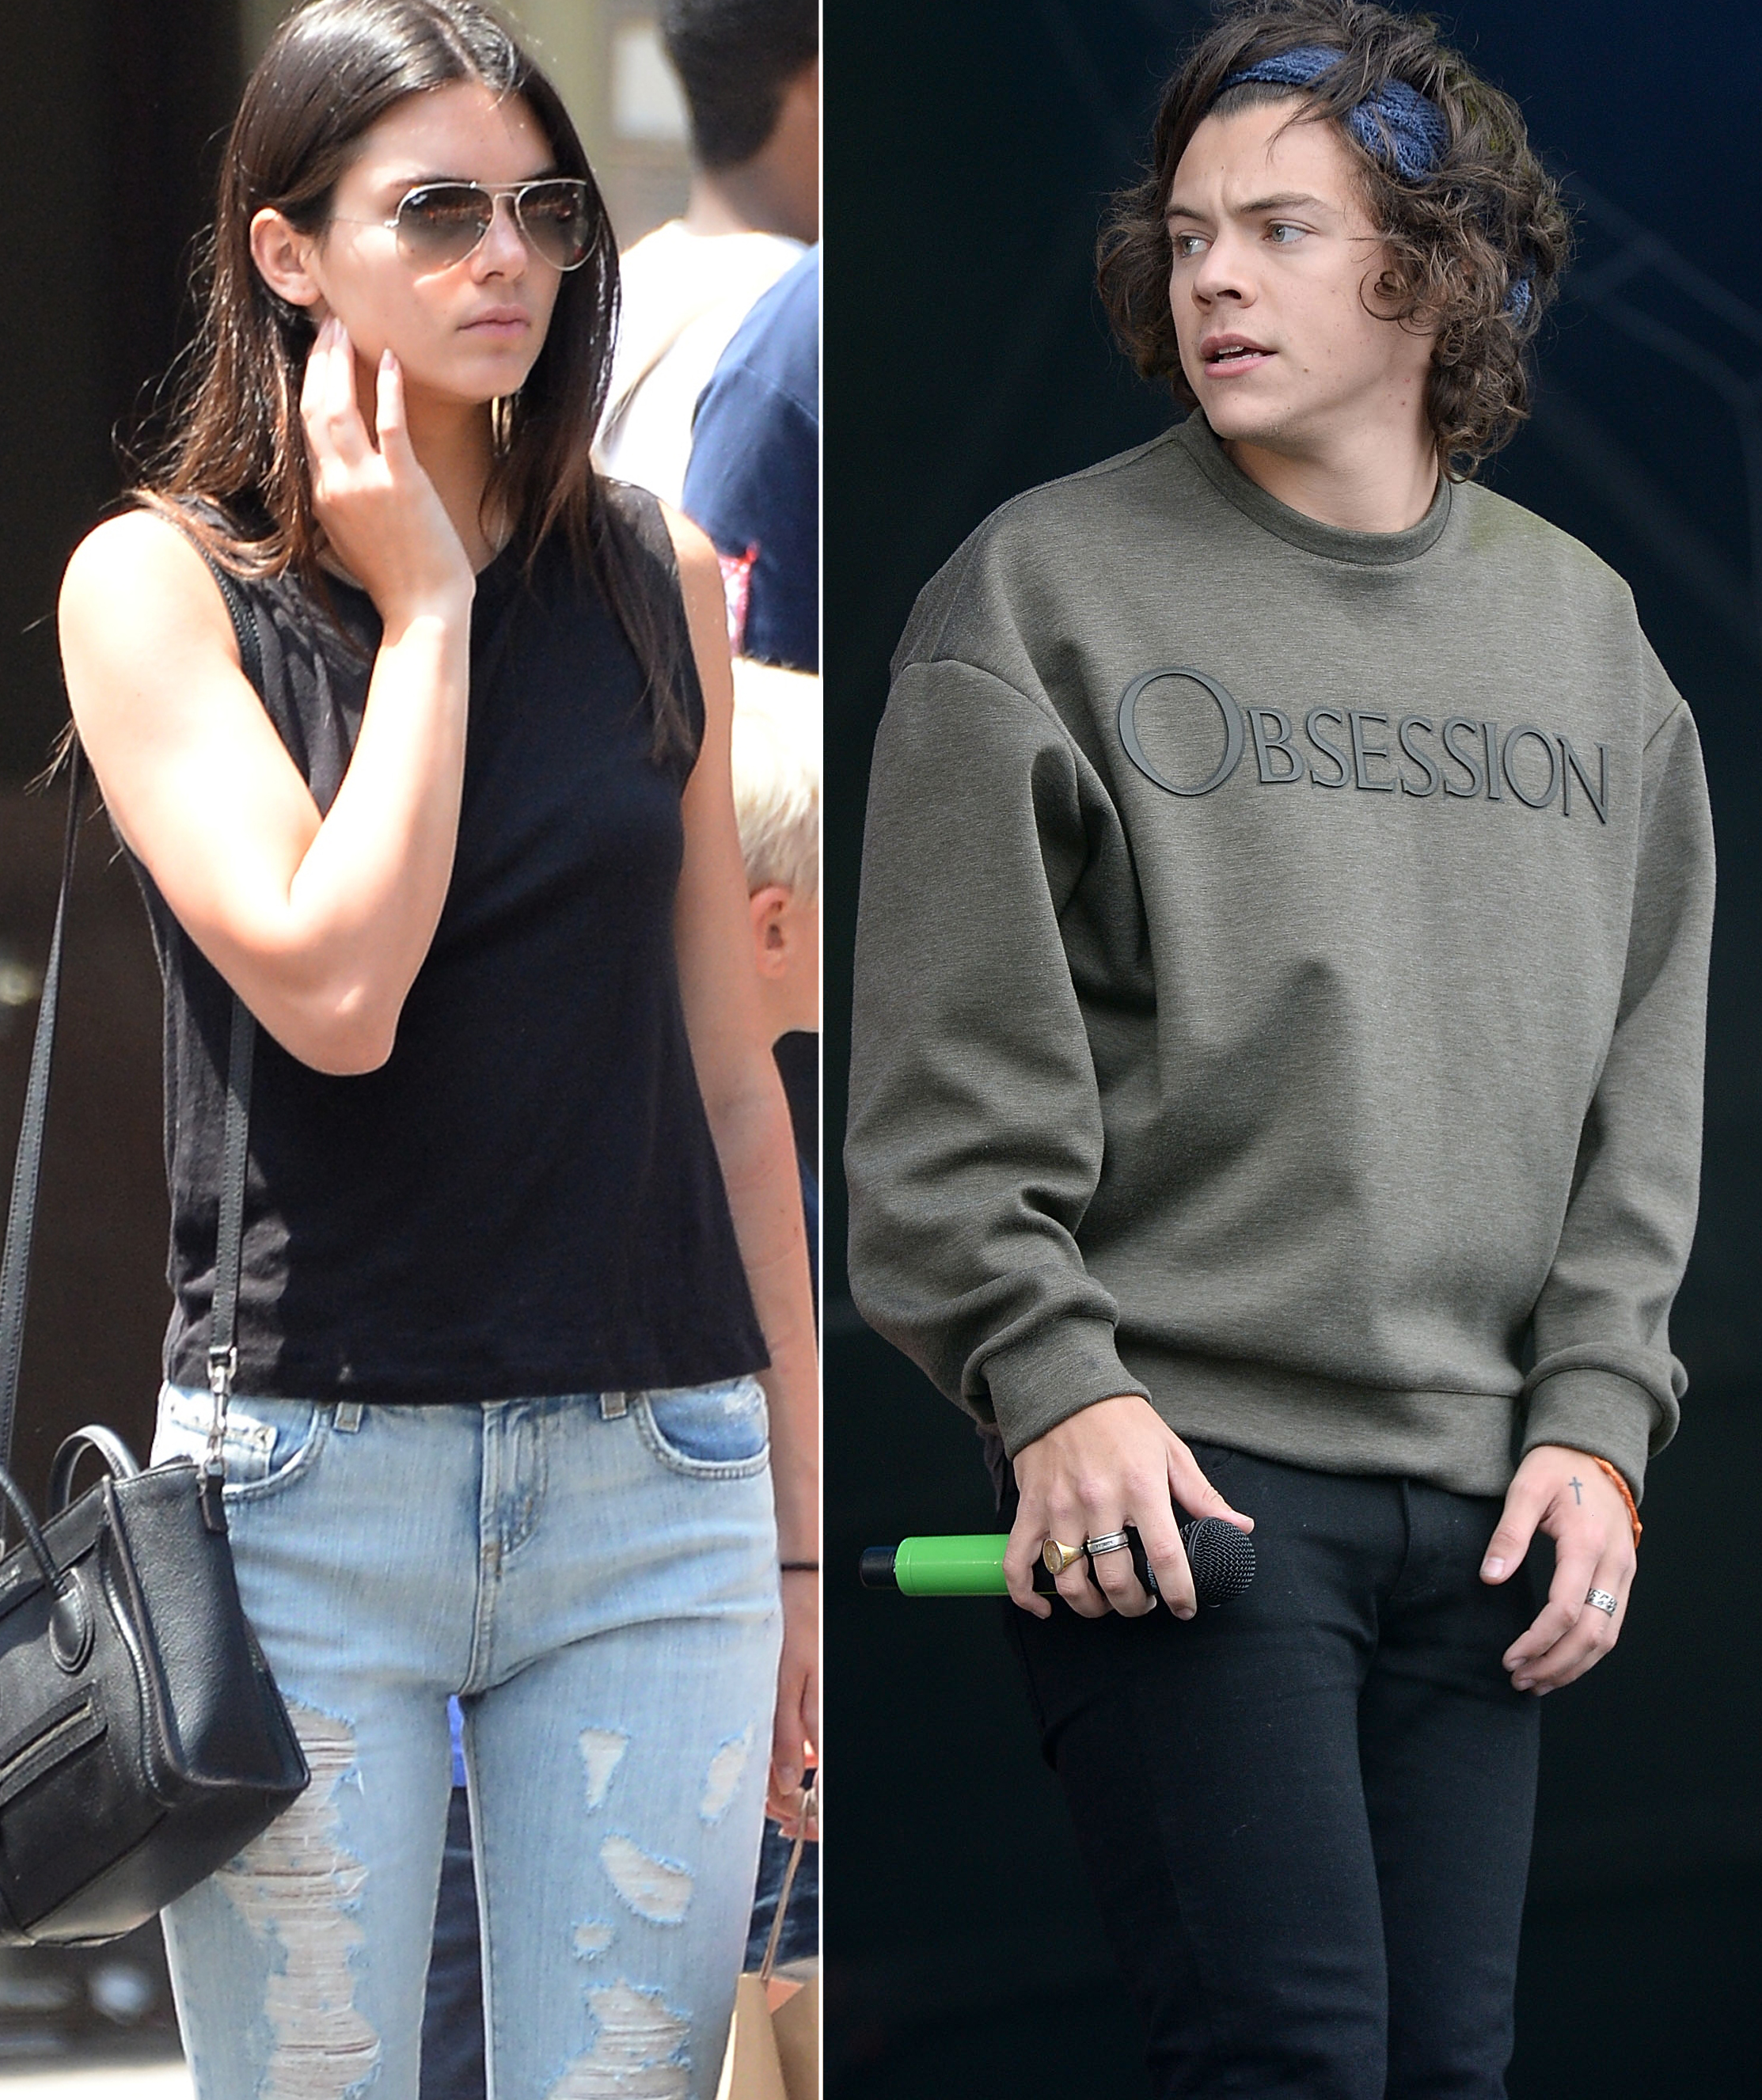 Are harry styles and kendall Jenner dating again